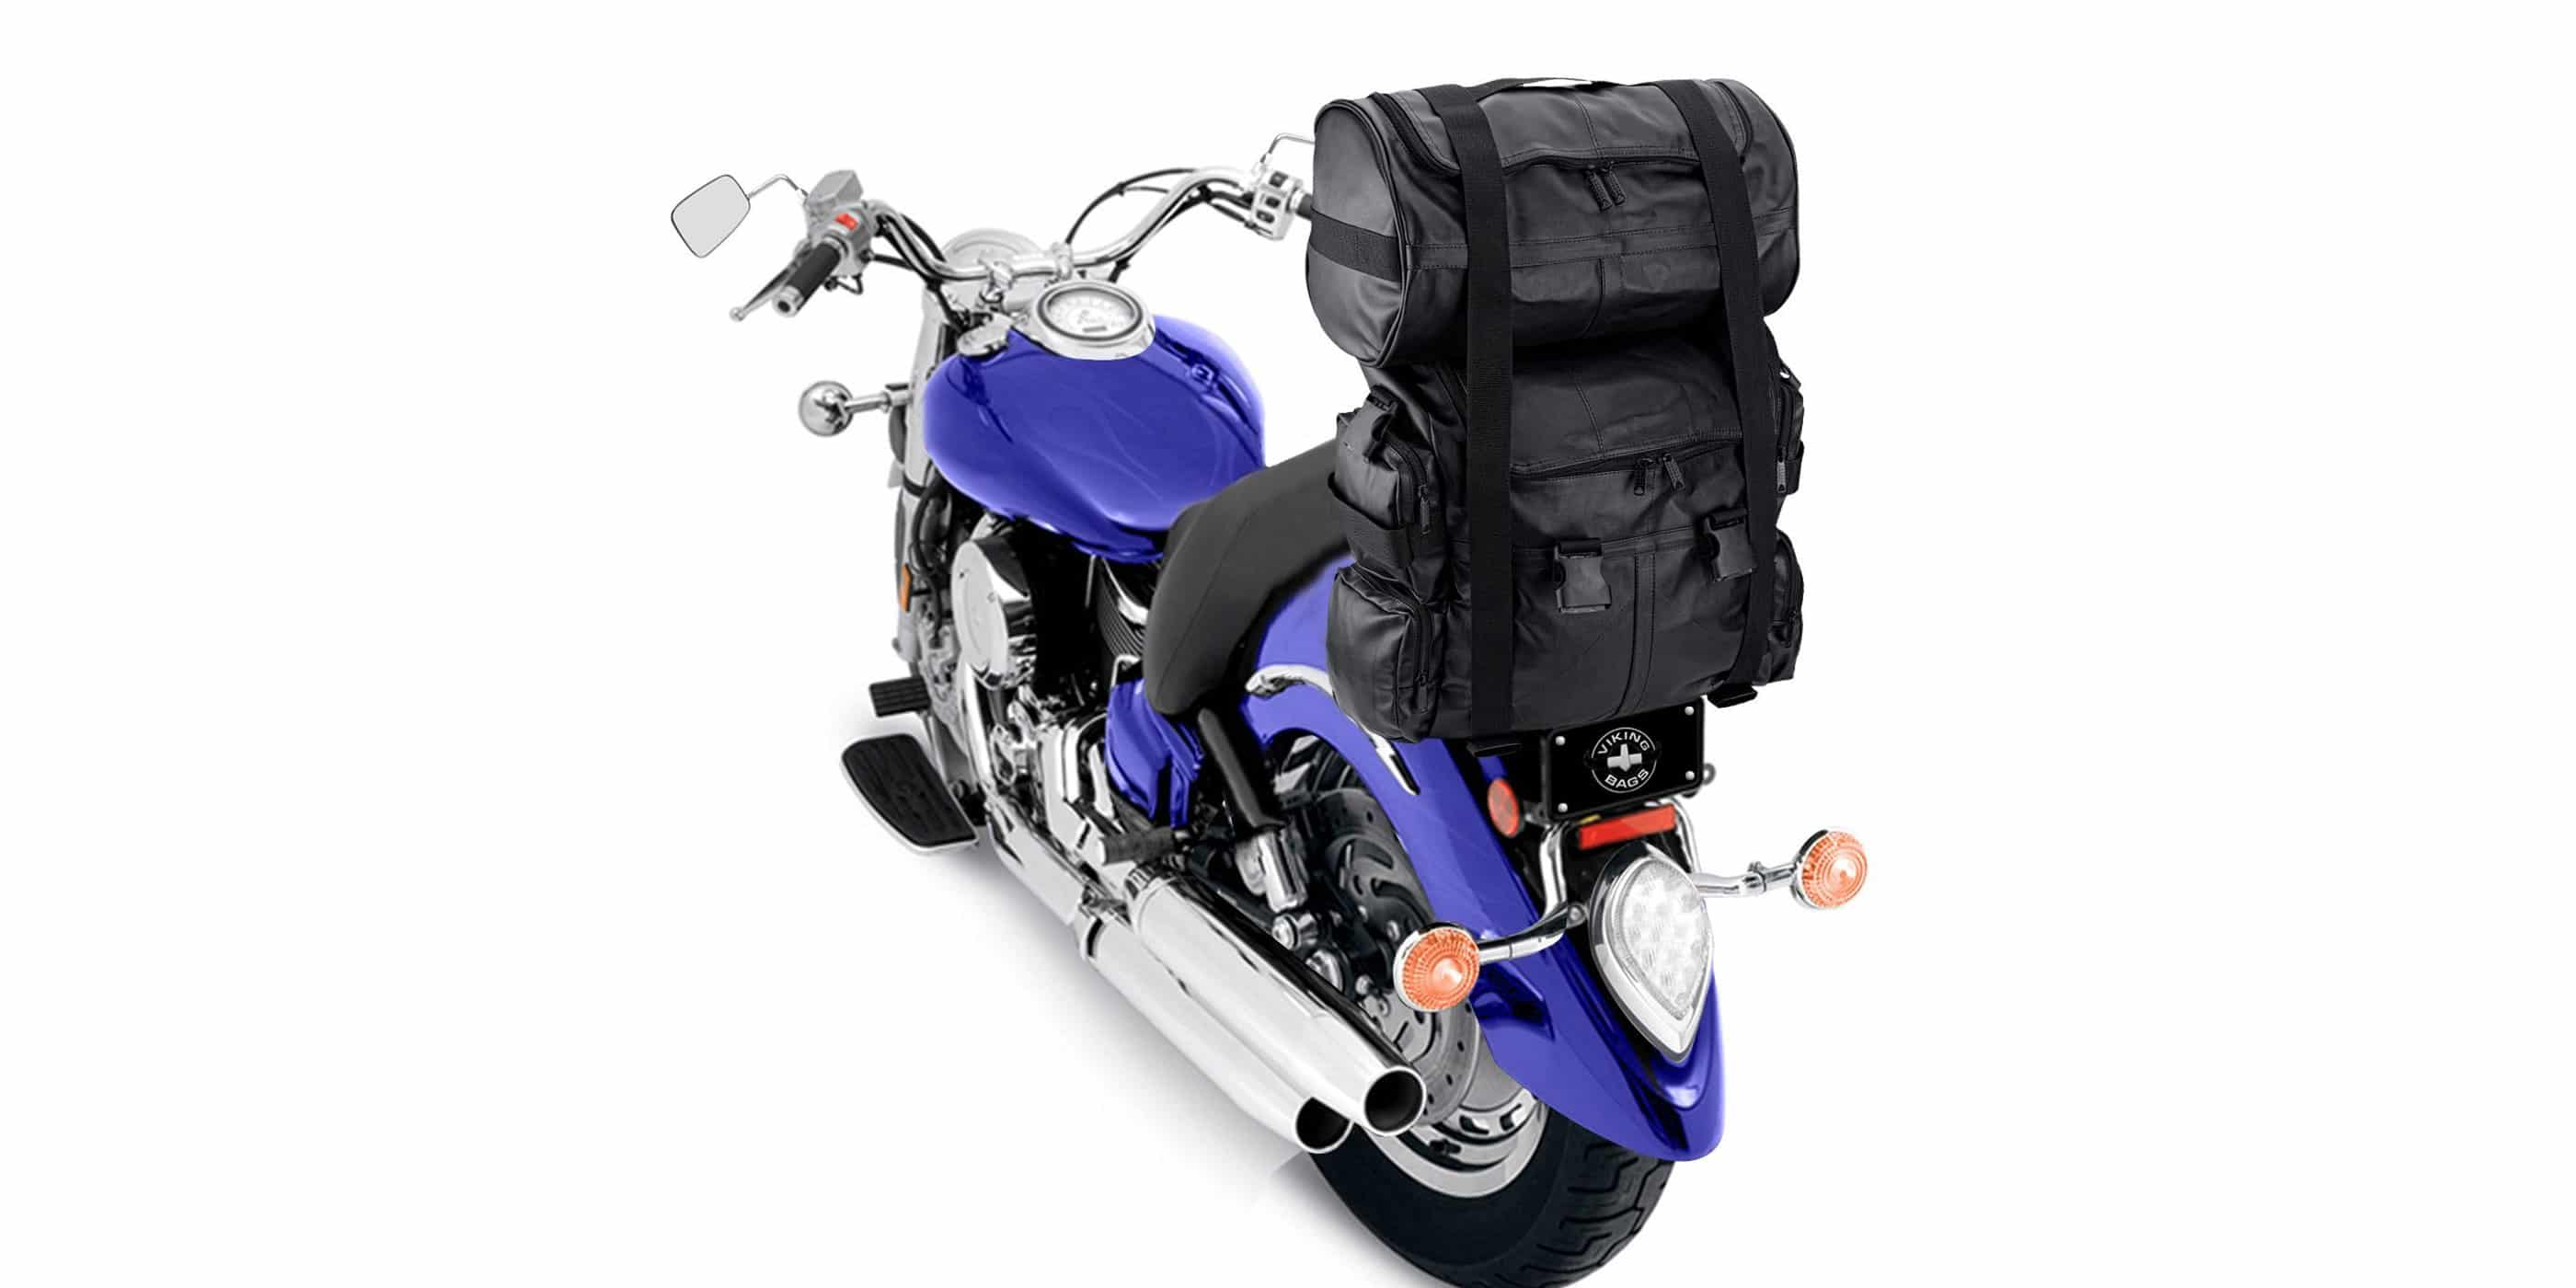 Top 10 Best Motorcycle Backpack in 2018 - Purchasing Guide - HQReview